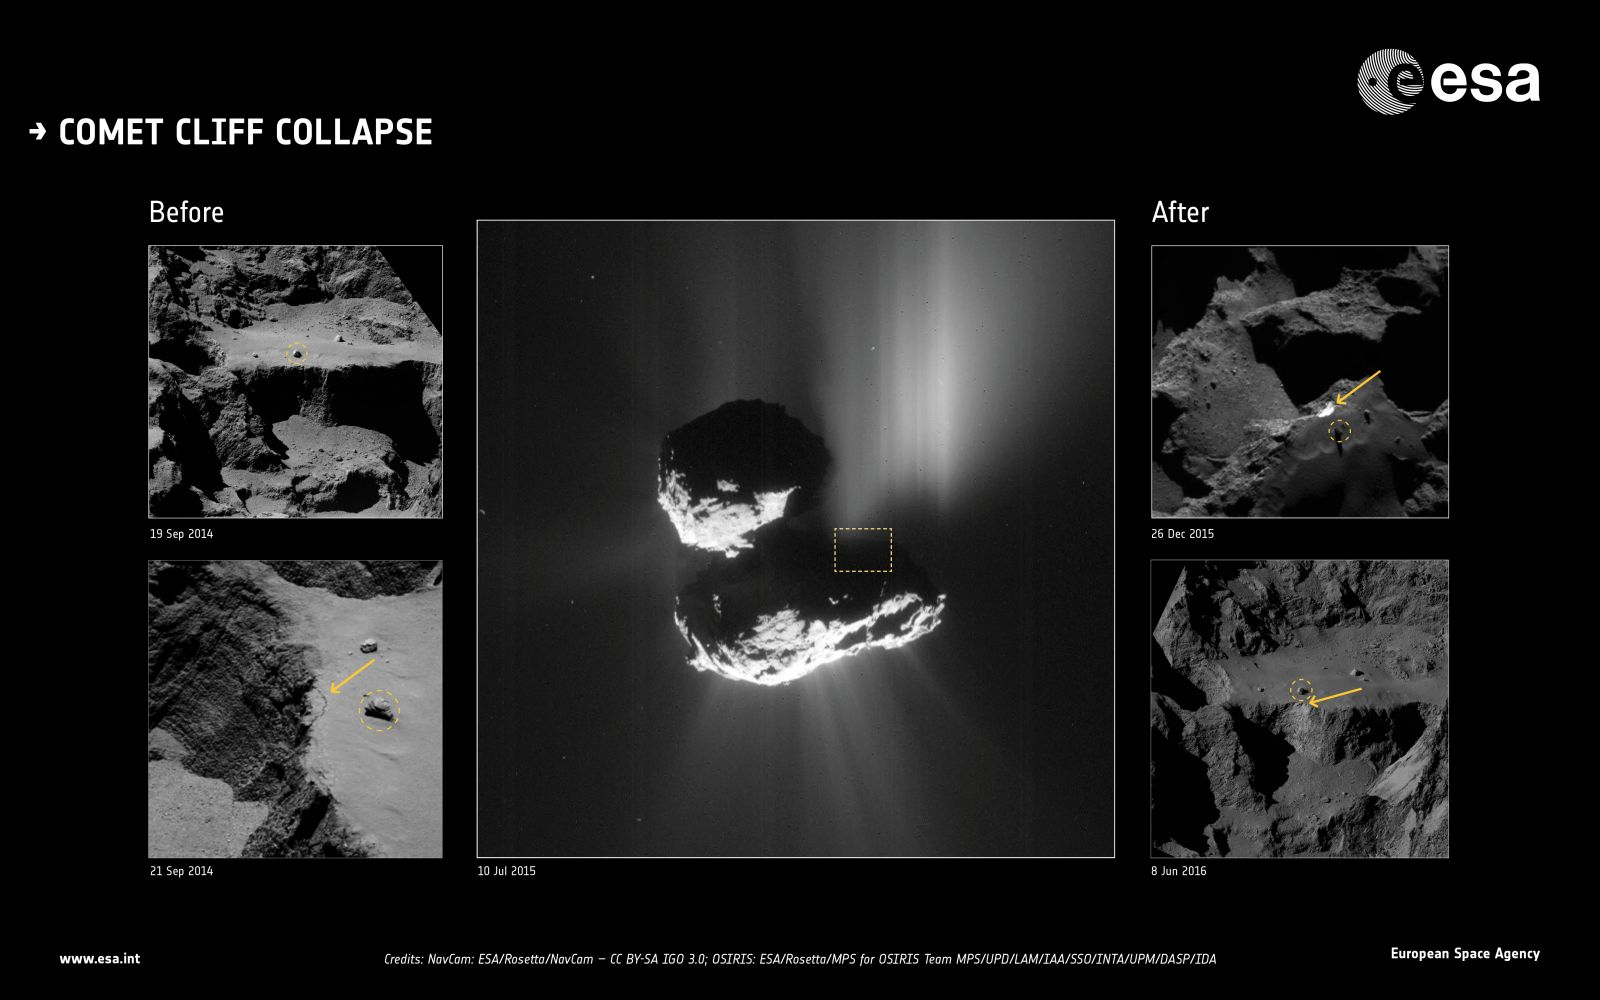 Comet 67P cliff collapse: before and after